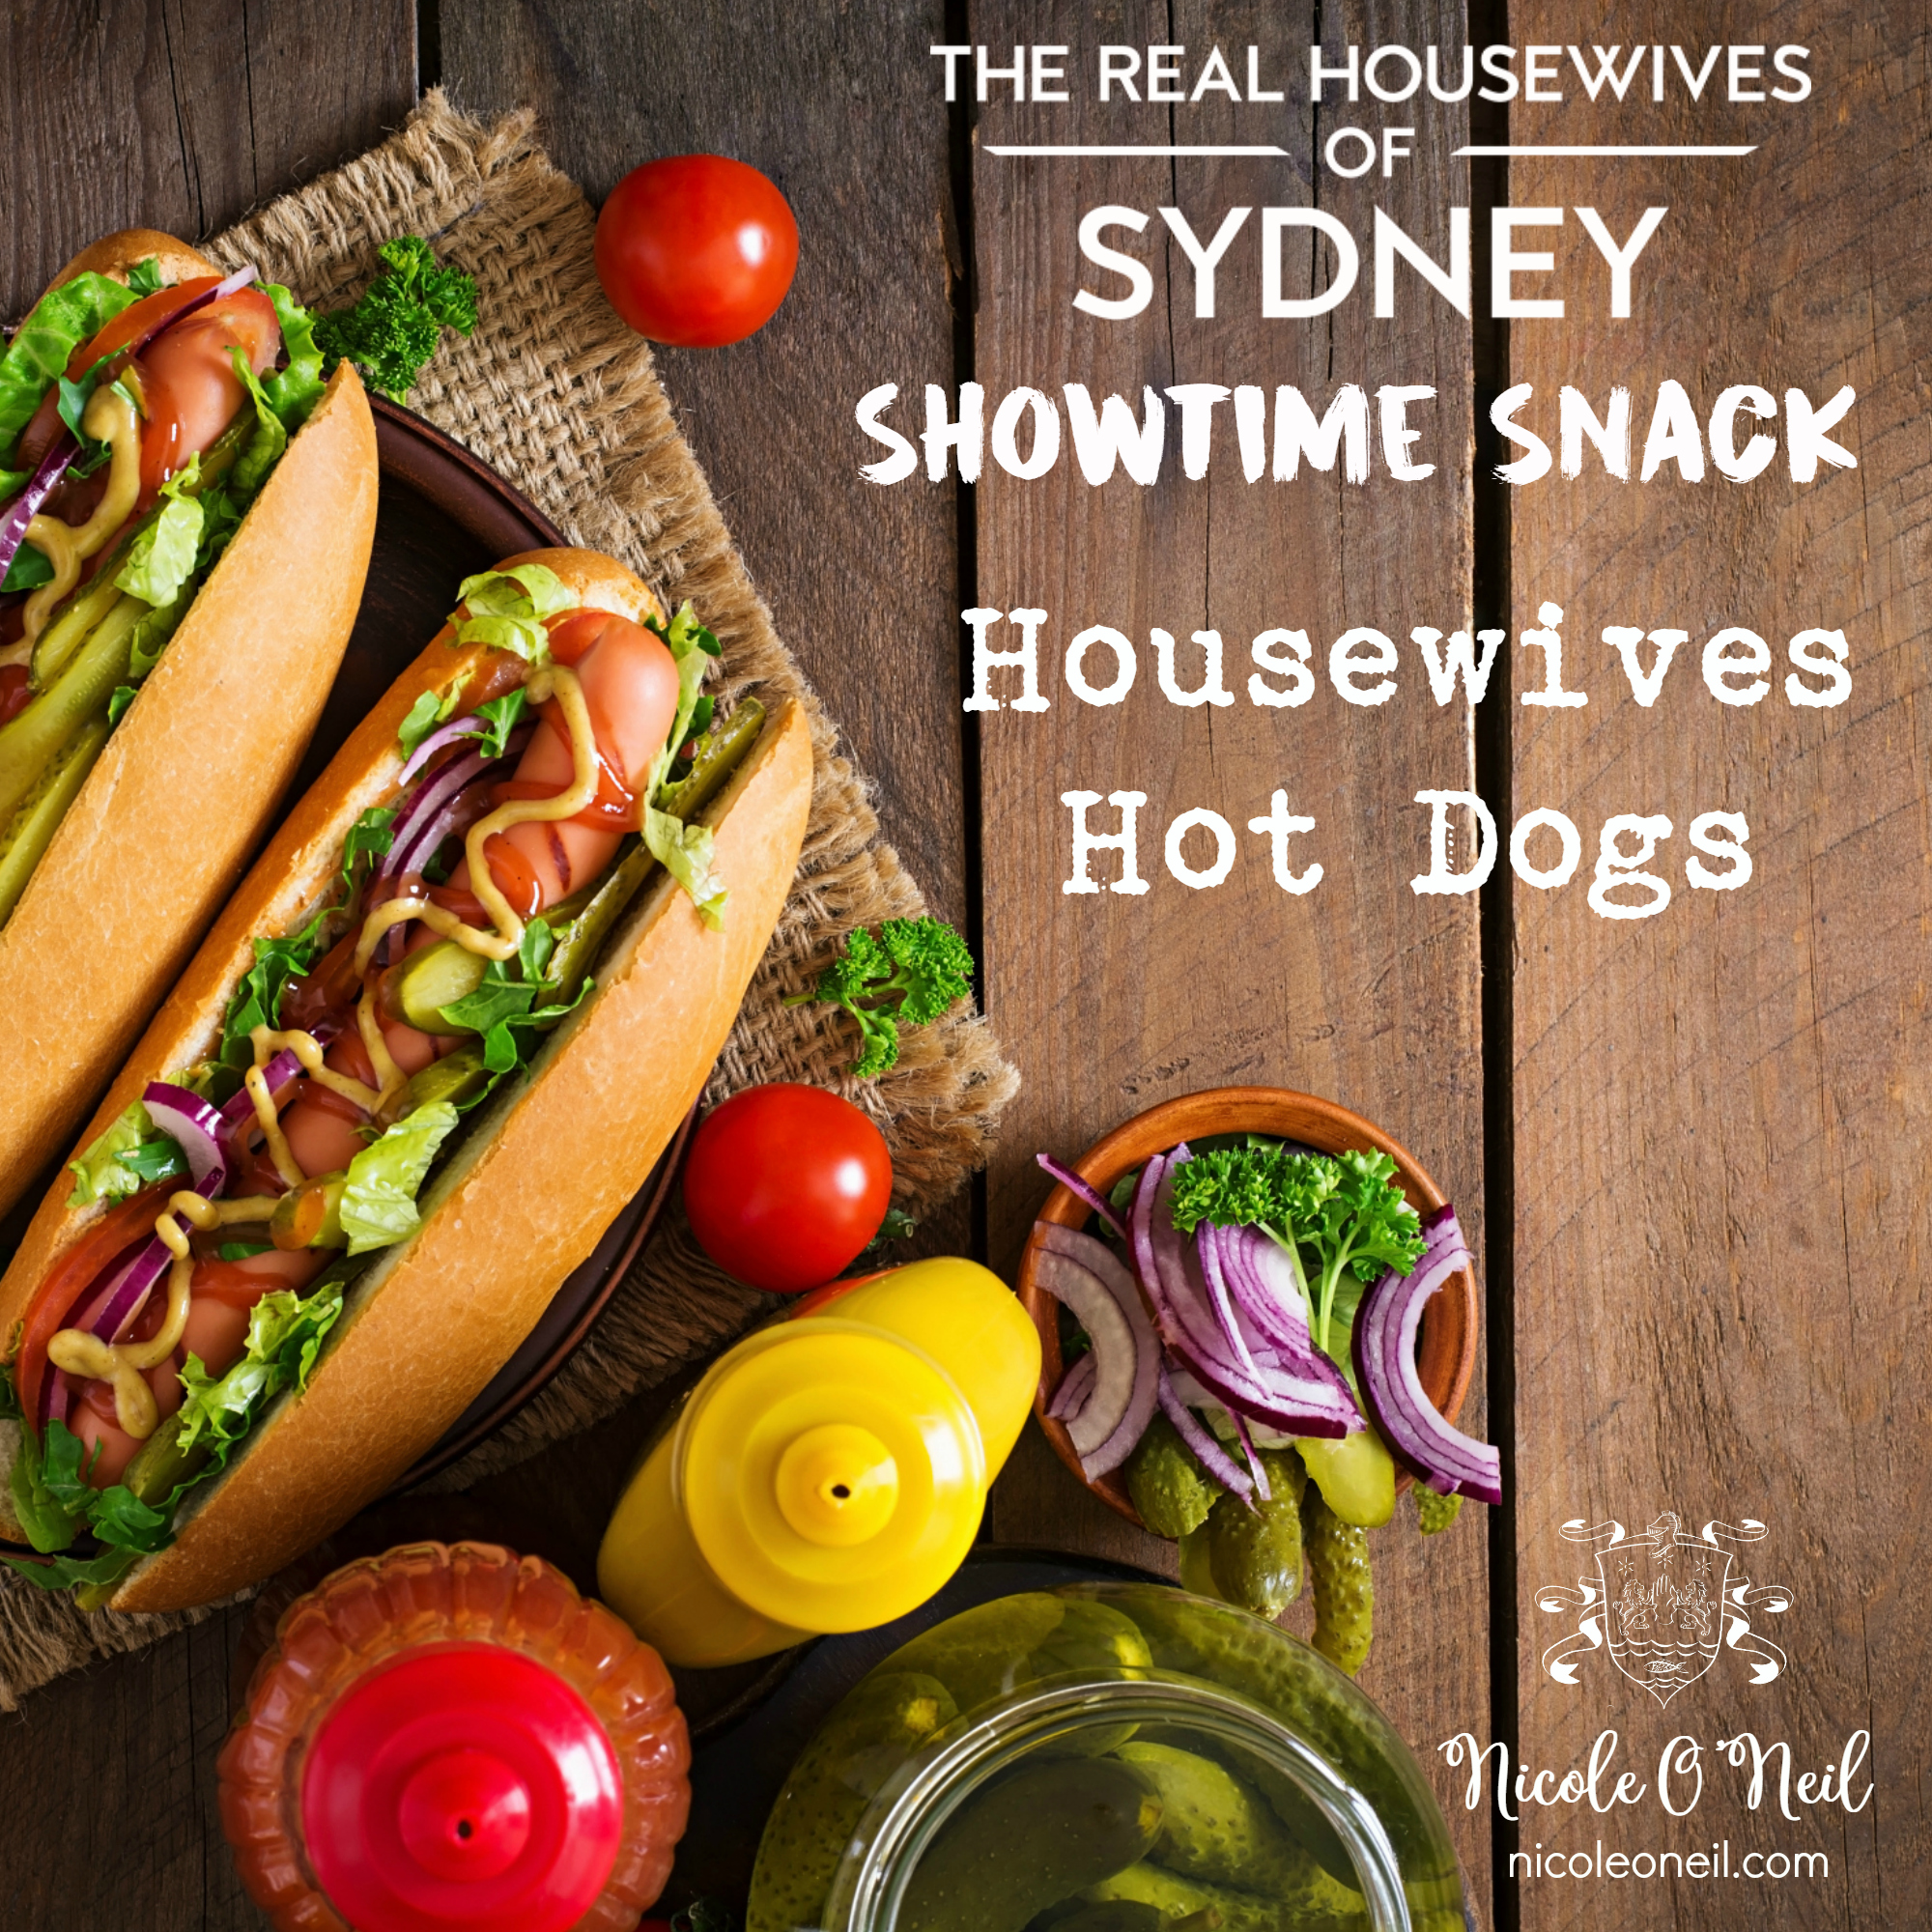 Inspired by each of the Real Housewives of Sydney cast members, Nicole has shared 7 delicious Hot Dog Recipes and variations that are sure to be a huge hit.